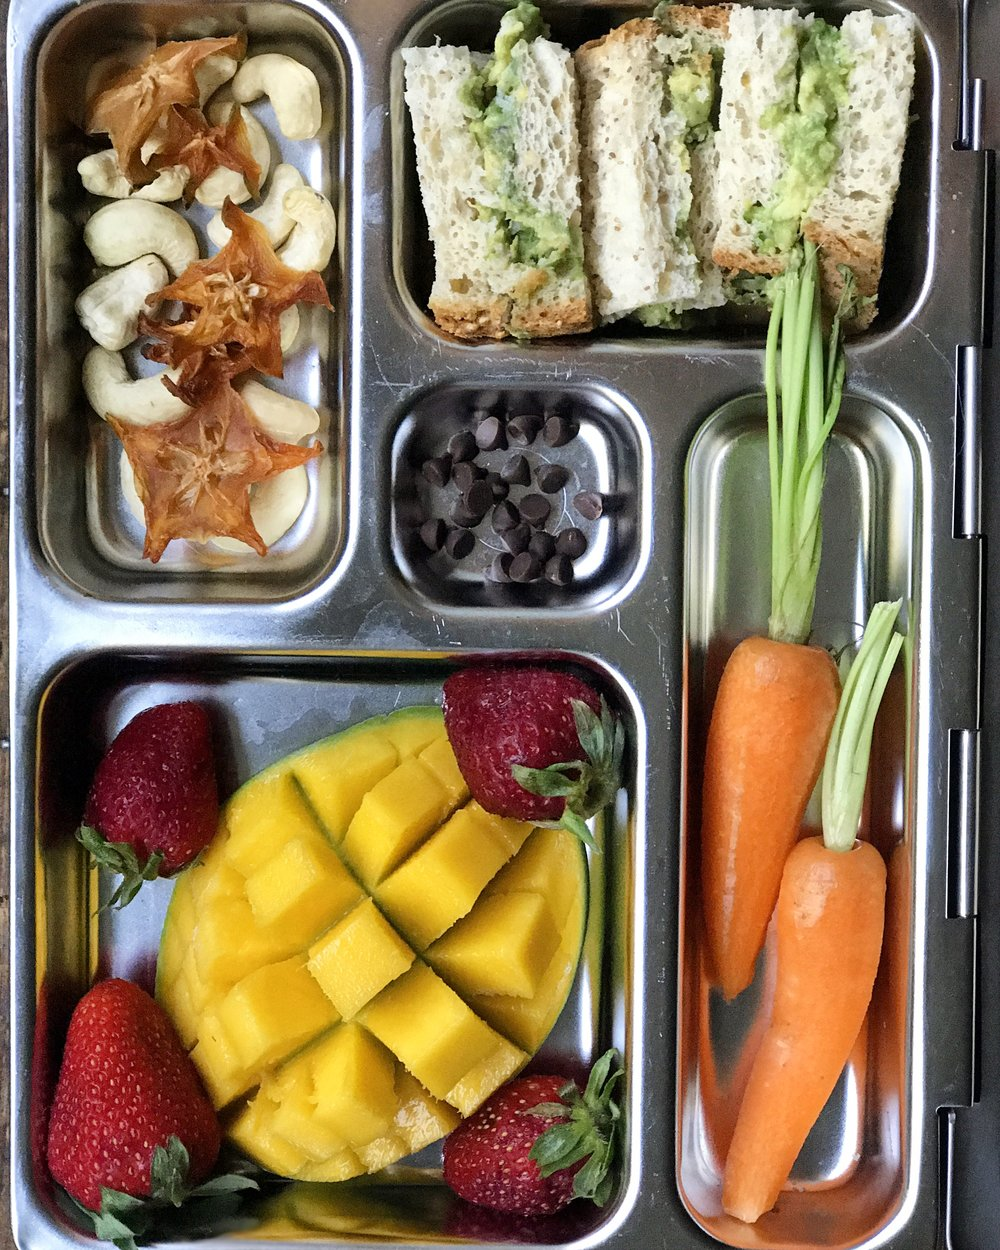 Lunch box contents: raw cashews & dried starfruit,   Chickpea & Avocado Salad  on gluten free bread, mango and strawberries, carrot,  chocolate chips . Lunch box by  Planet Box .